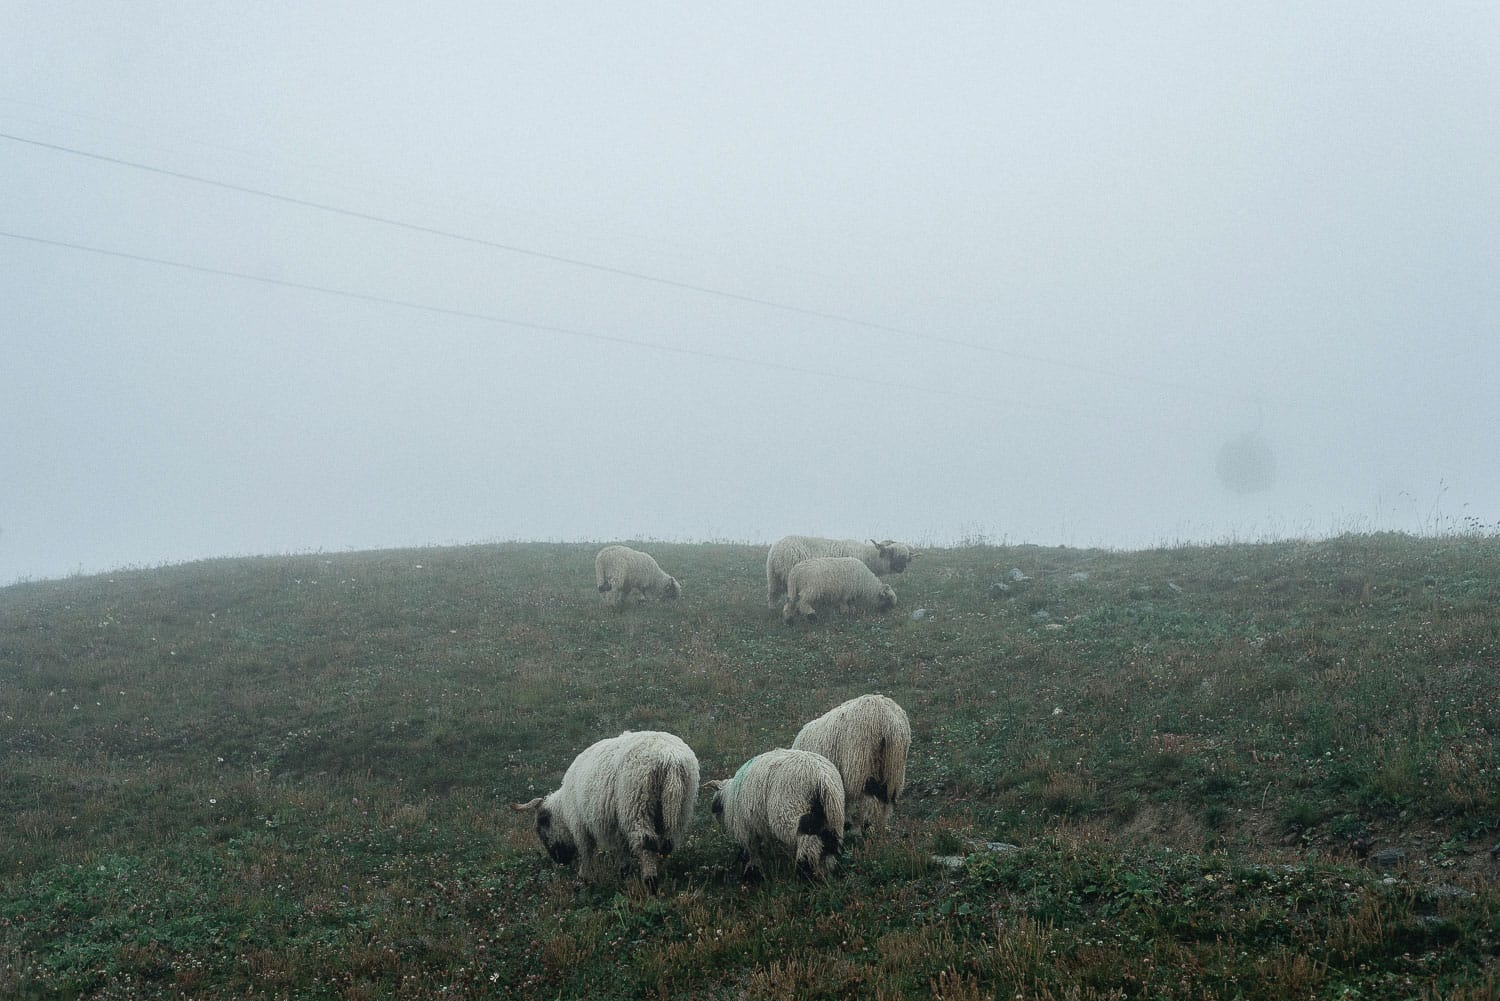 Swiss sheep in rain and fog